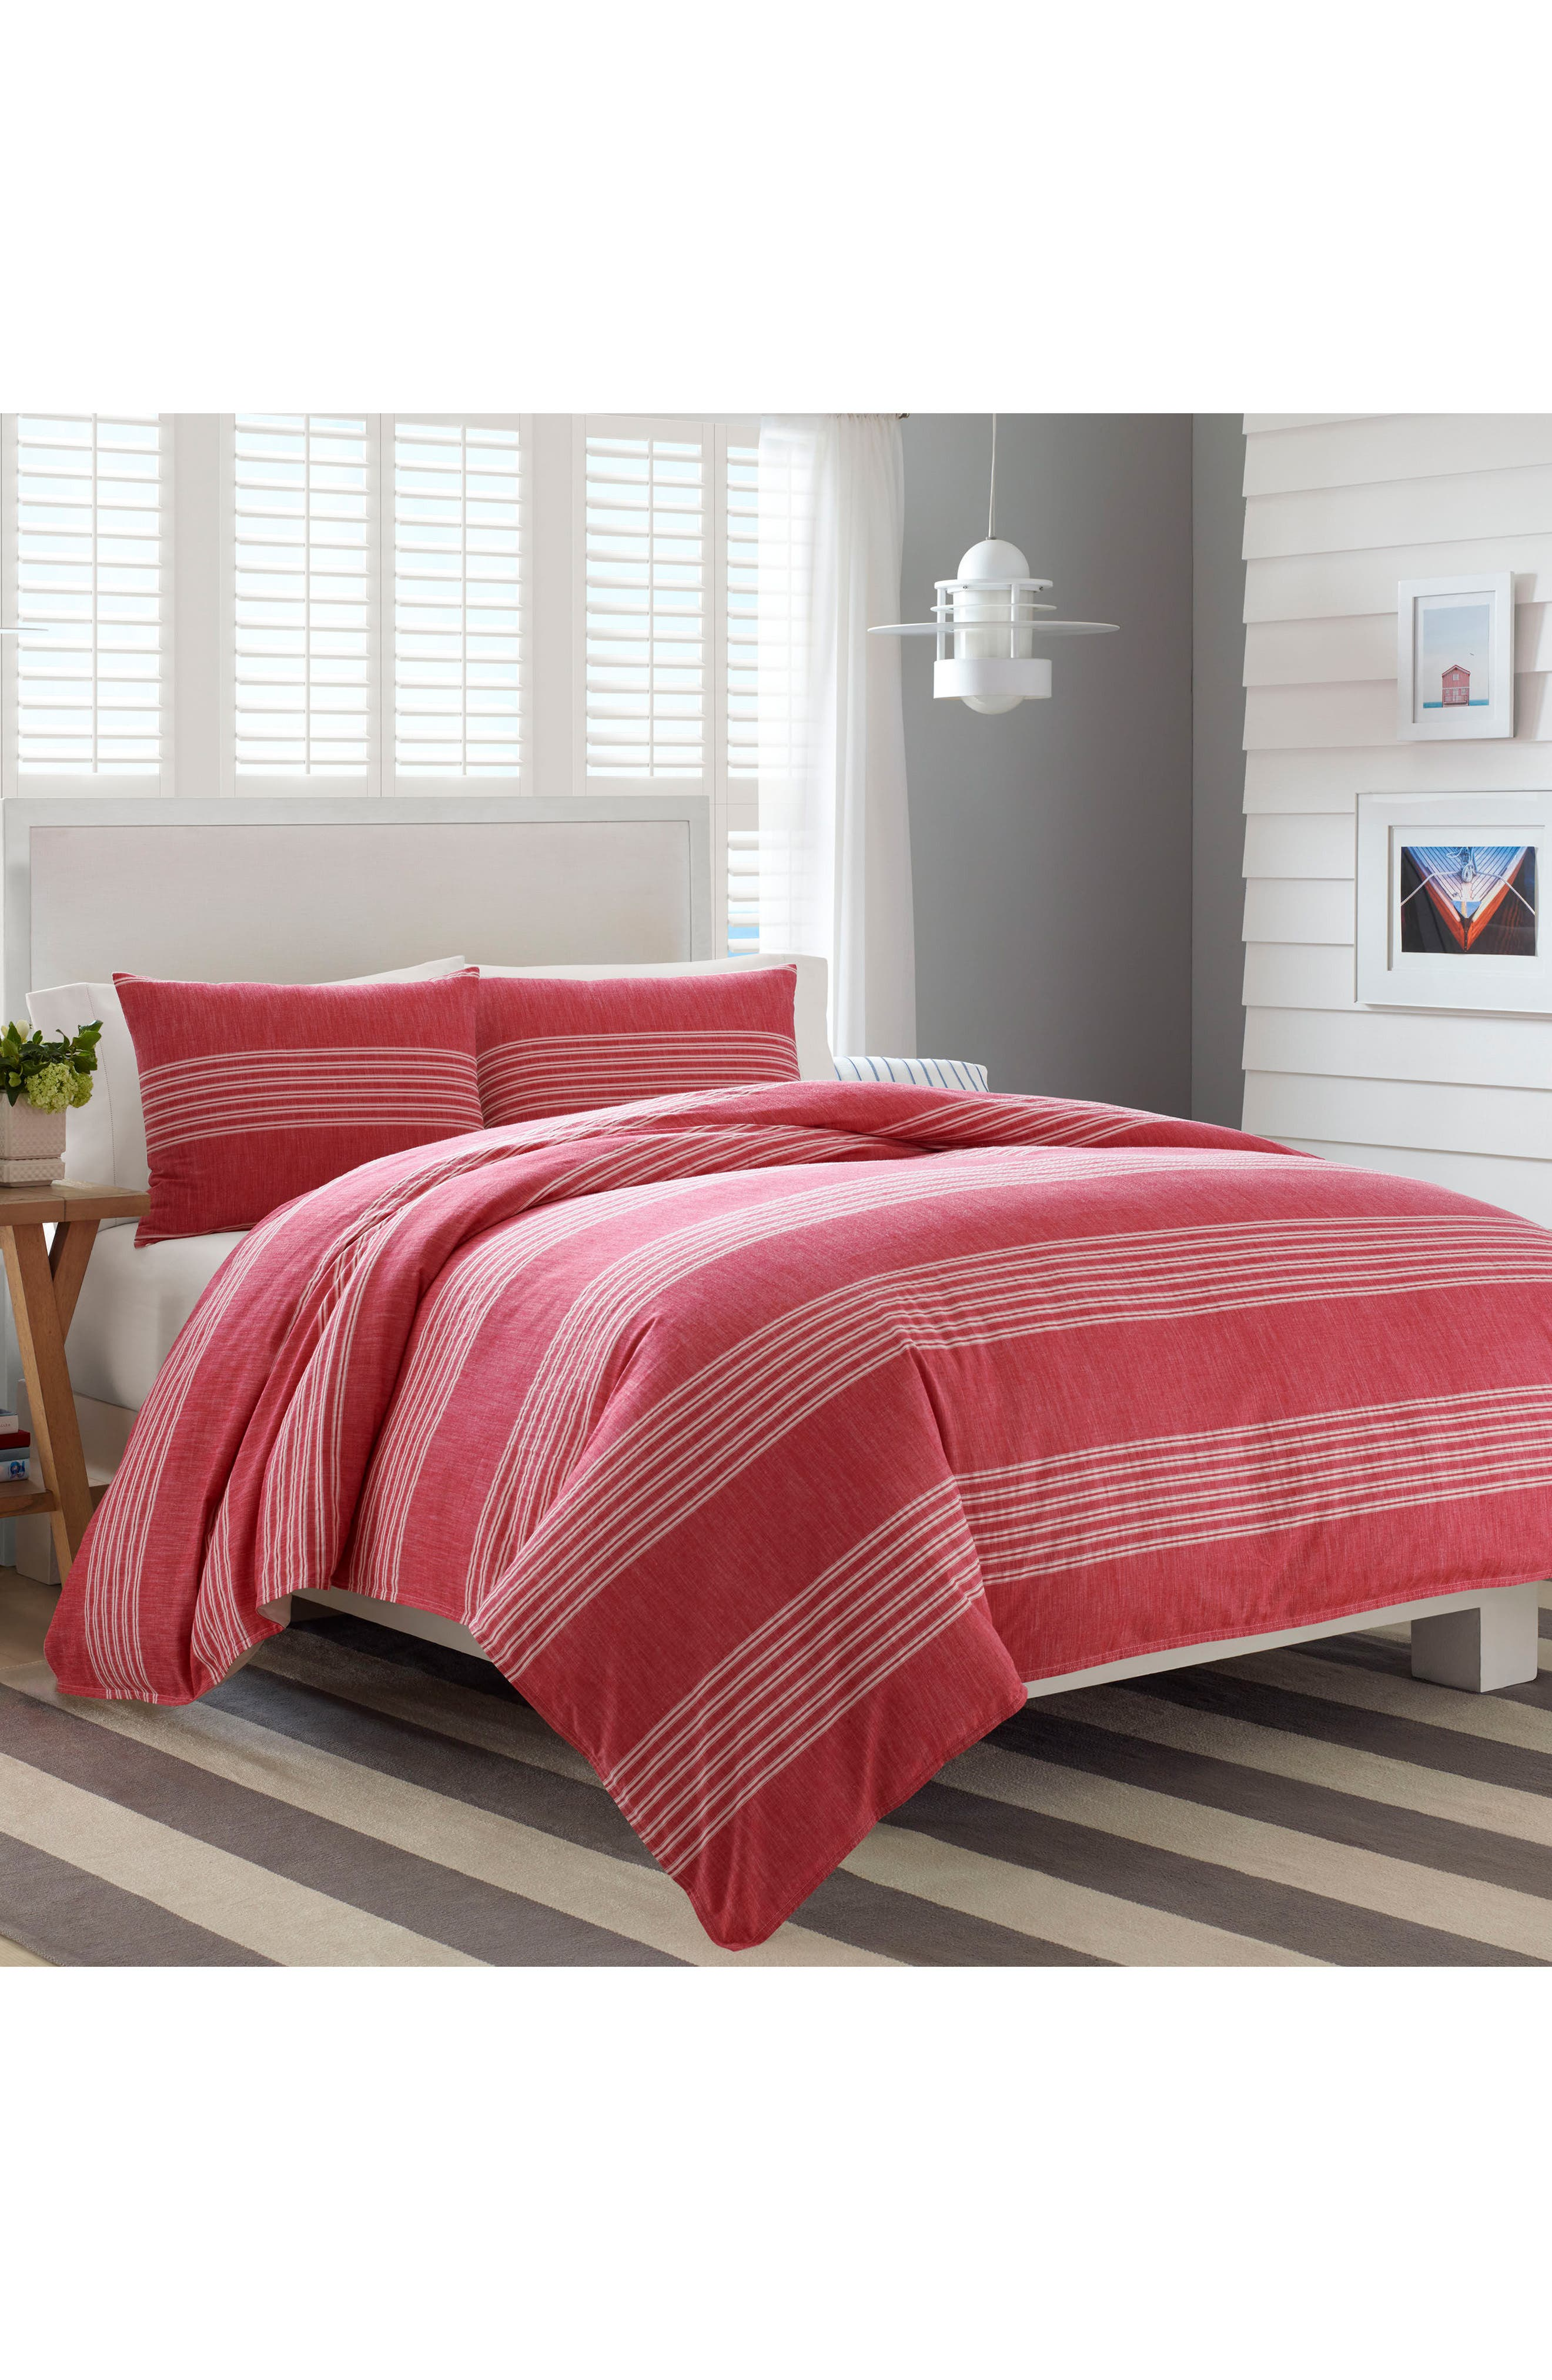 Trawler Duvet Cover & Sham Set,                             Main thumbnail 1, color,                             Red